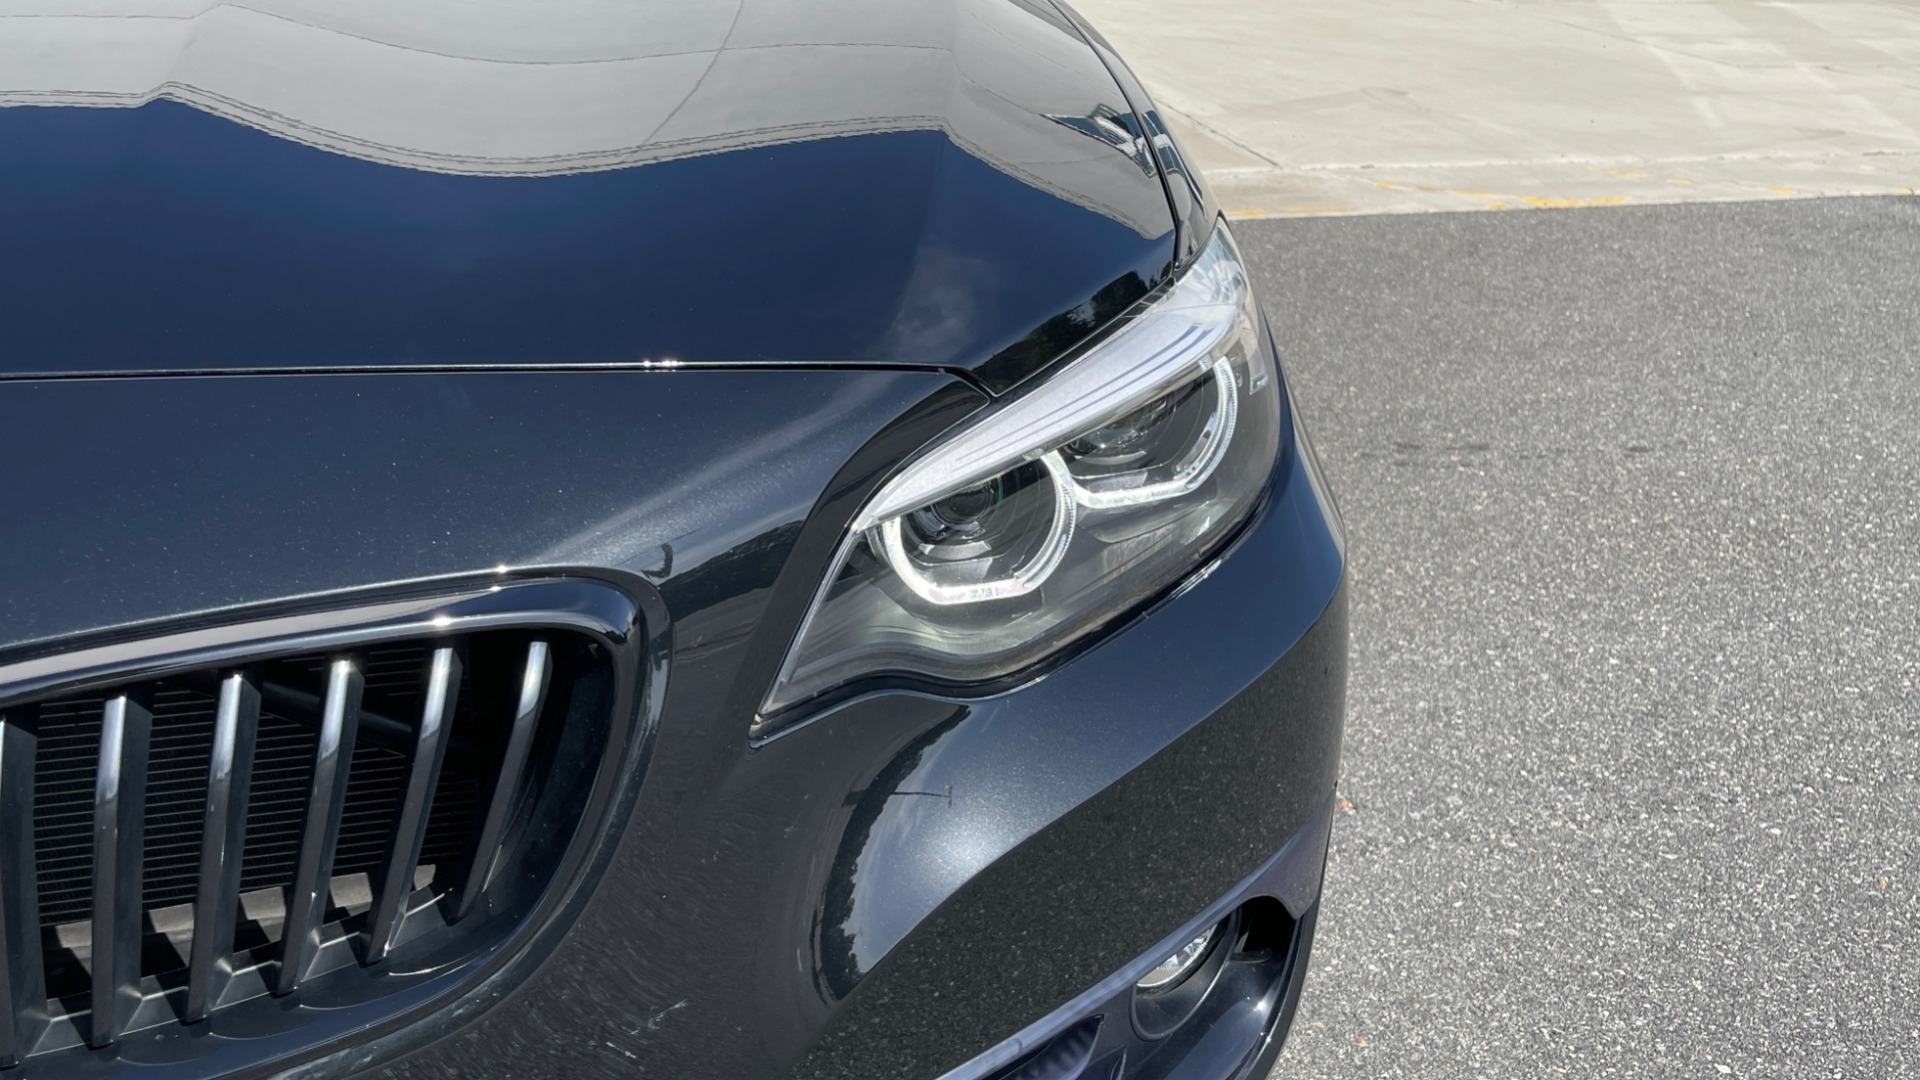 Used 2018 BMW 2 SERIES 230I XDRIVE PREMIUM / CONV PKG / NAV / SUNROOF / REARVIEW for sale $30,795 at Formula Imports in Charlotte NC 28227 13